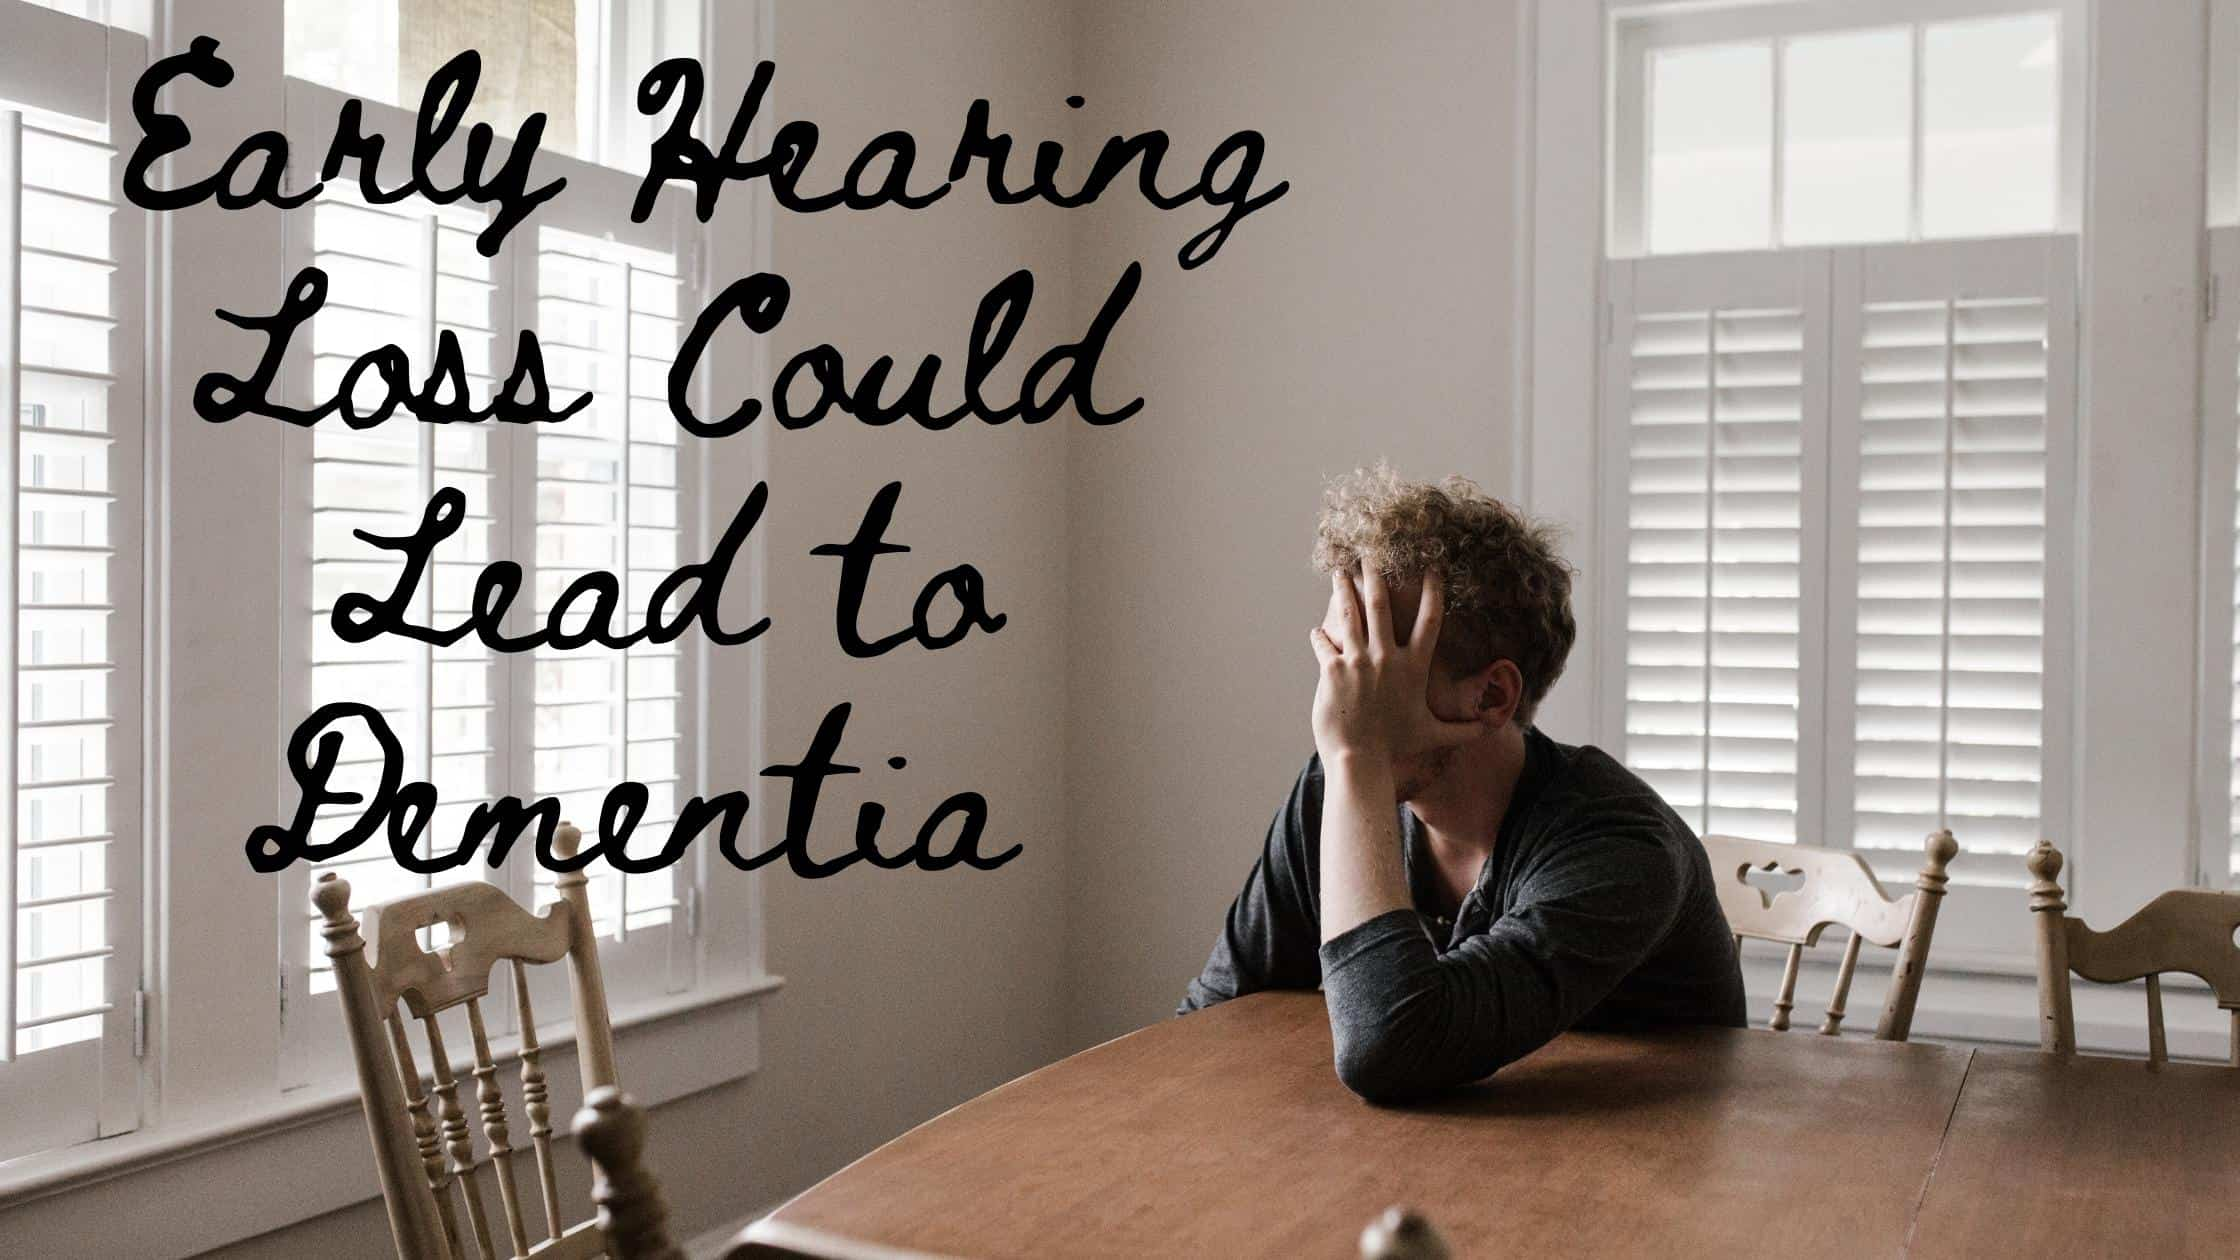 Early Hearing Loss Could Lead to Dementia